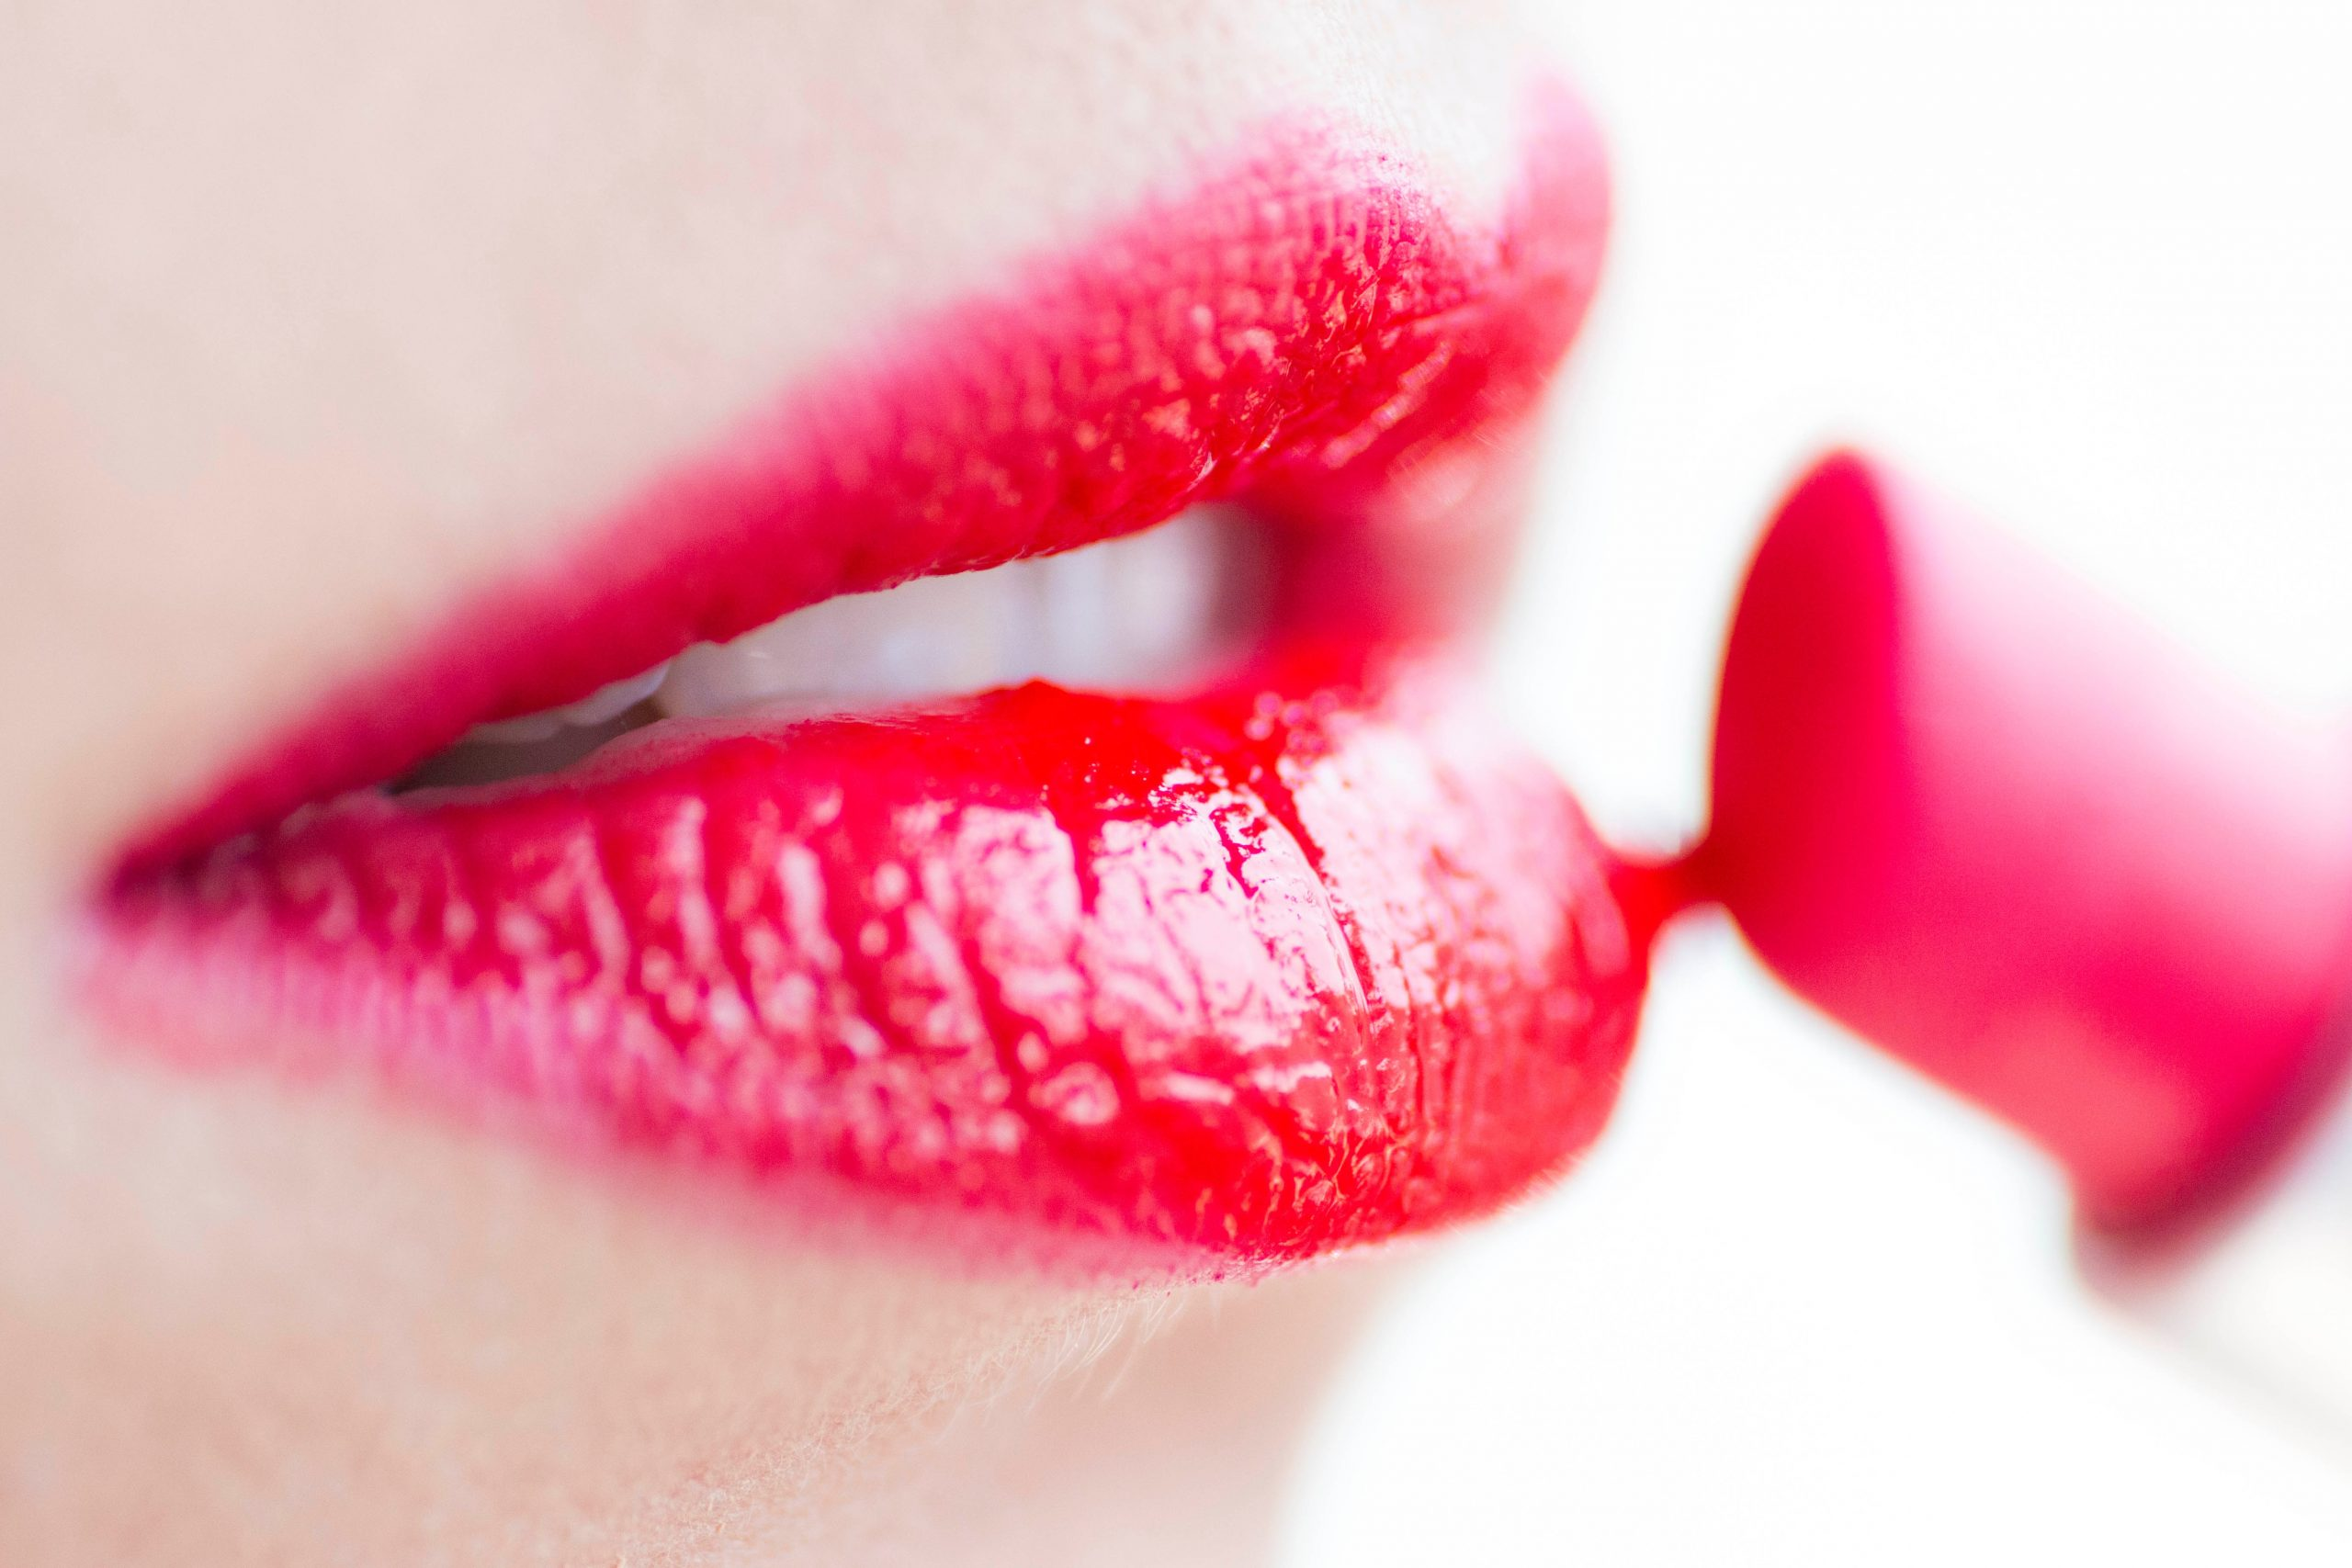 close-up of red Lips applying red lipstick